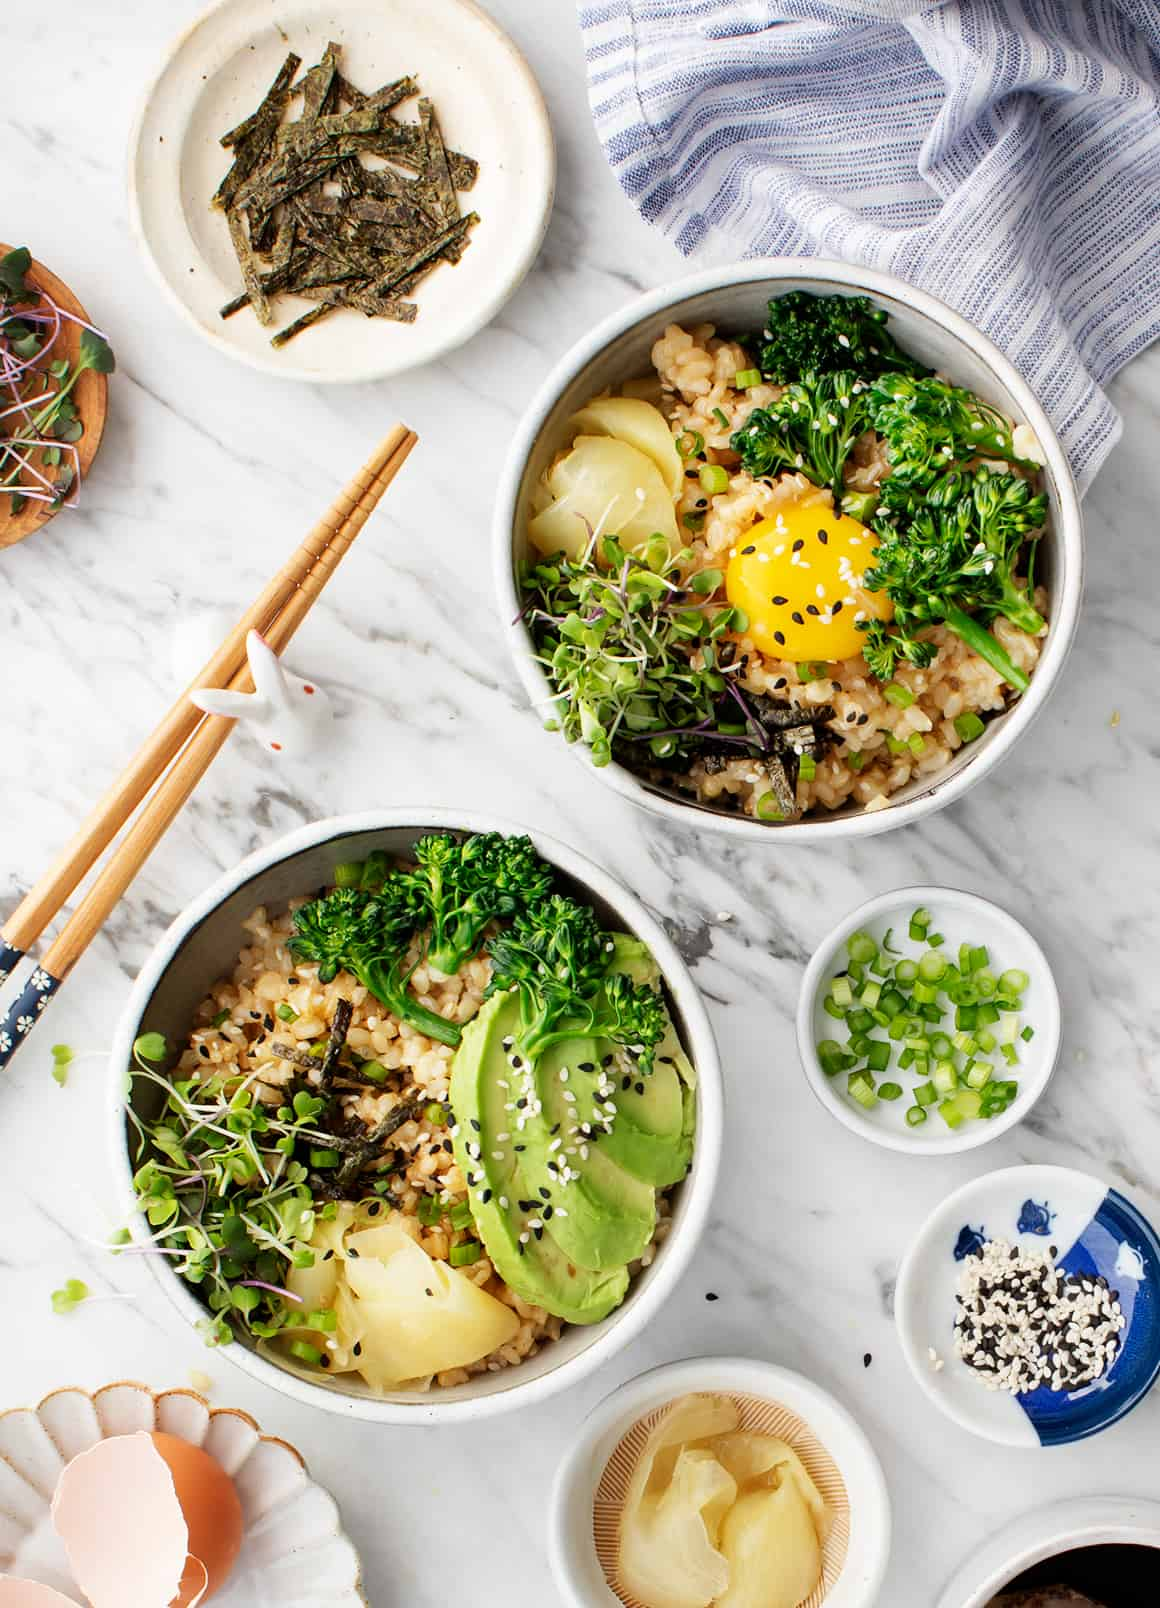 Avocado & Egg Brown Rice Bowl